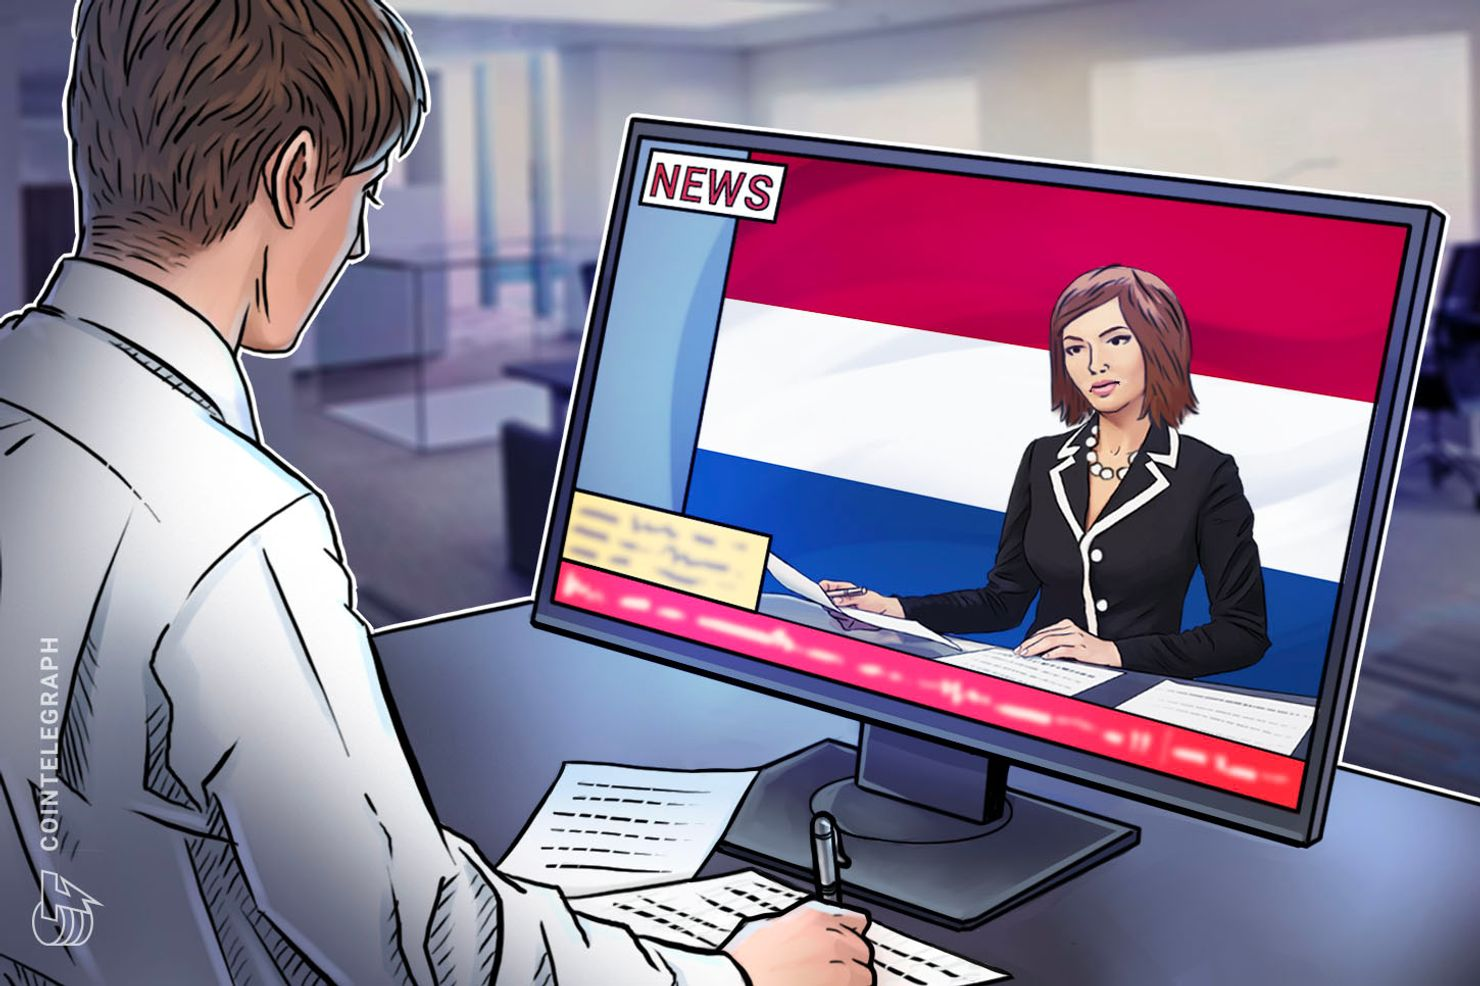 Netherlands: Bitcoin Trader Attacked in His Home